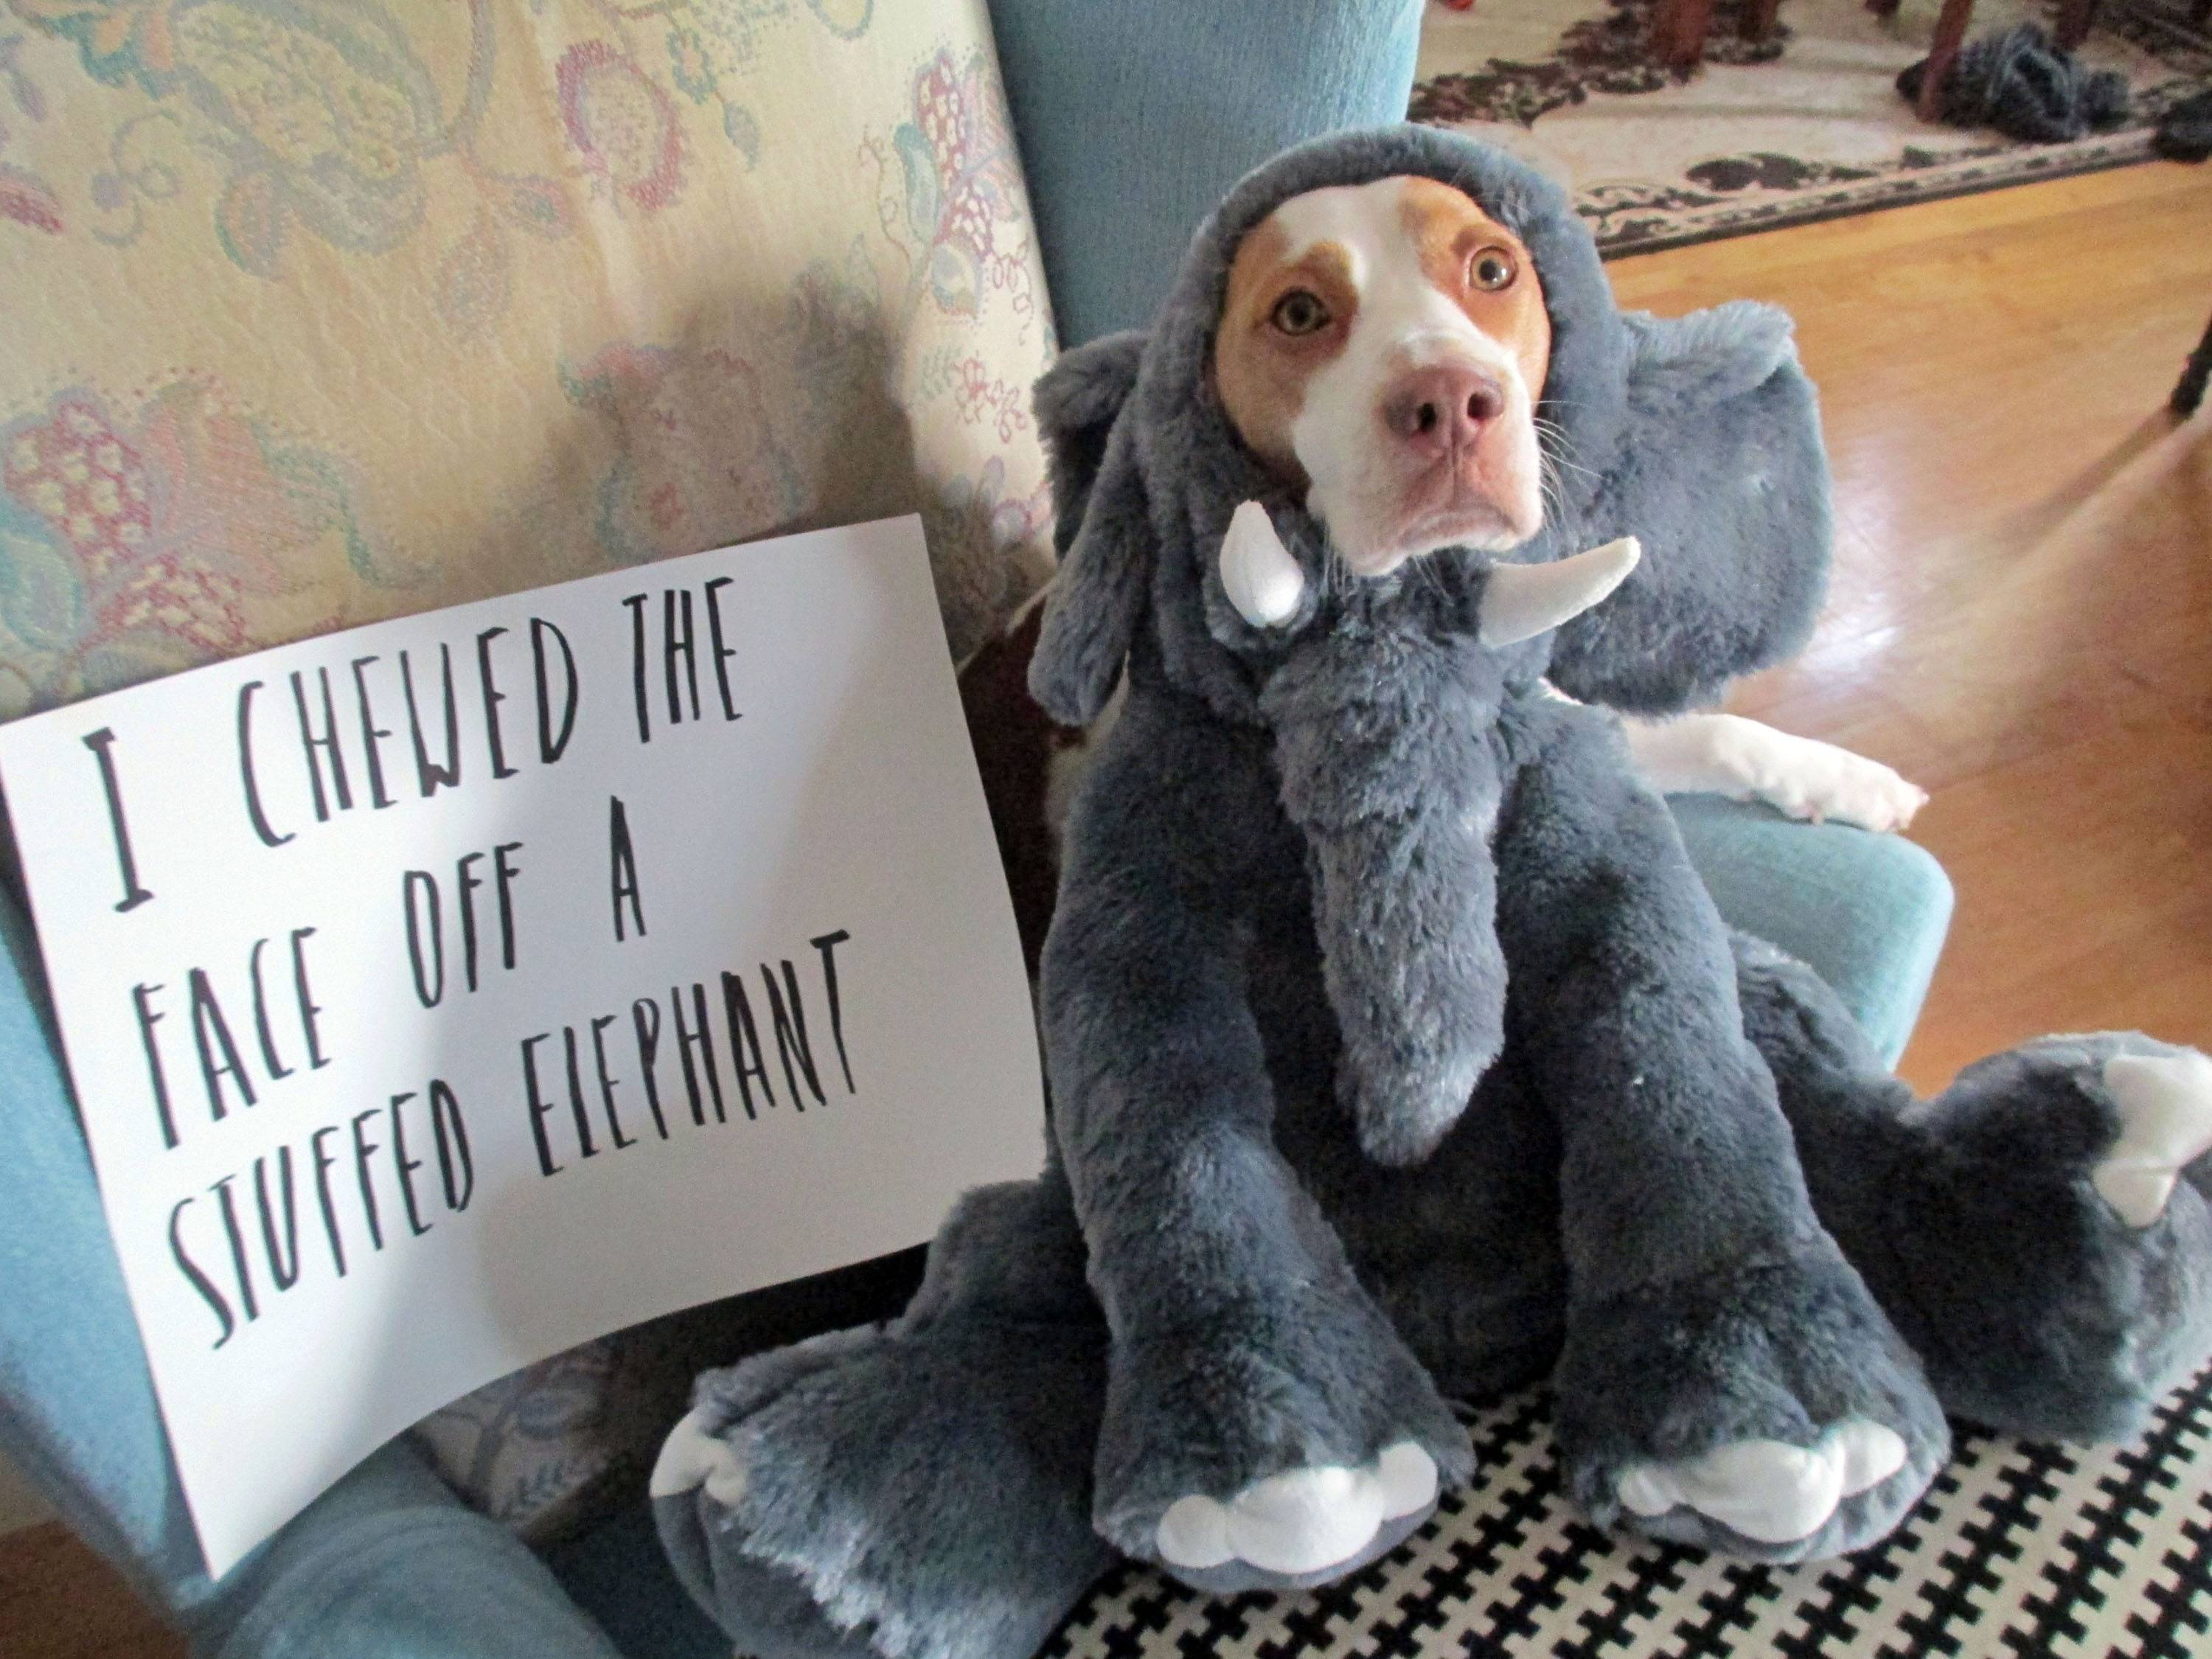 Scientific findings haven't put a dent in the popularity of online dog shaming sites like dogshaming.com and shameyourpet.com or videos like those posted on YouTube.